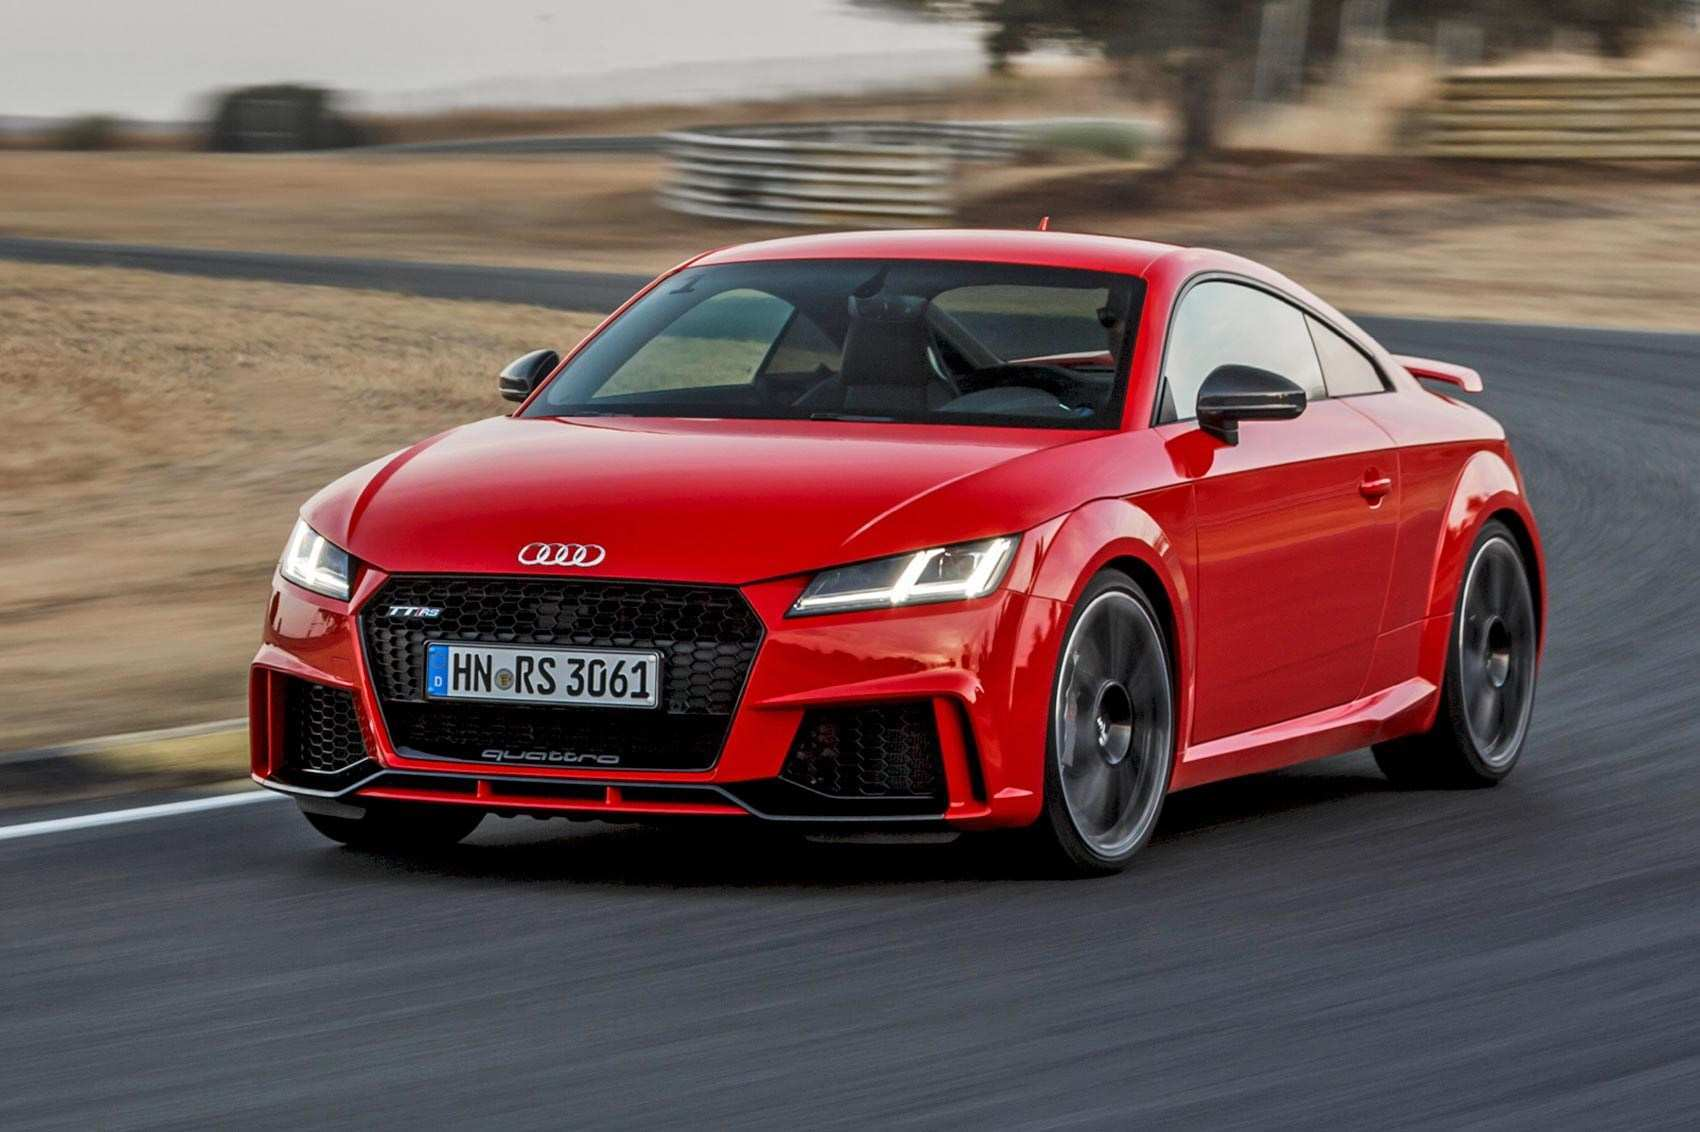 16 Concept of New Audi Tt Rs Plus 2019 Price And Review Spy Shoot with New Audi Tt Rs Plus 2019 Price And Review